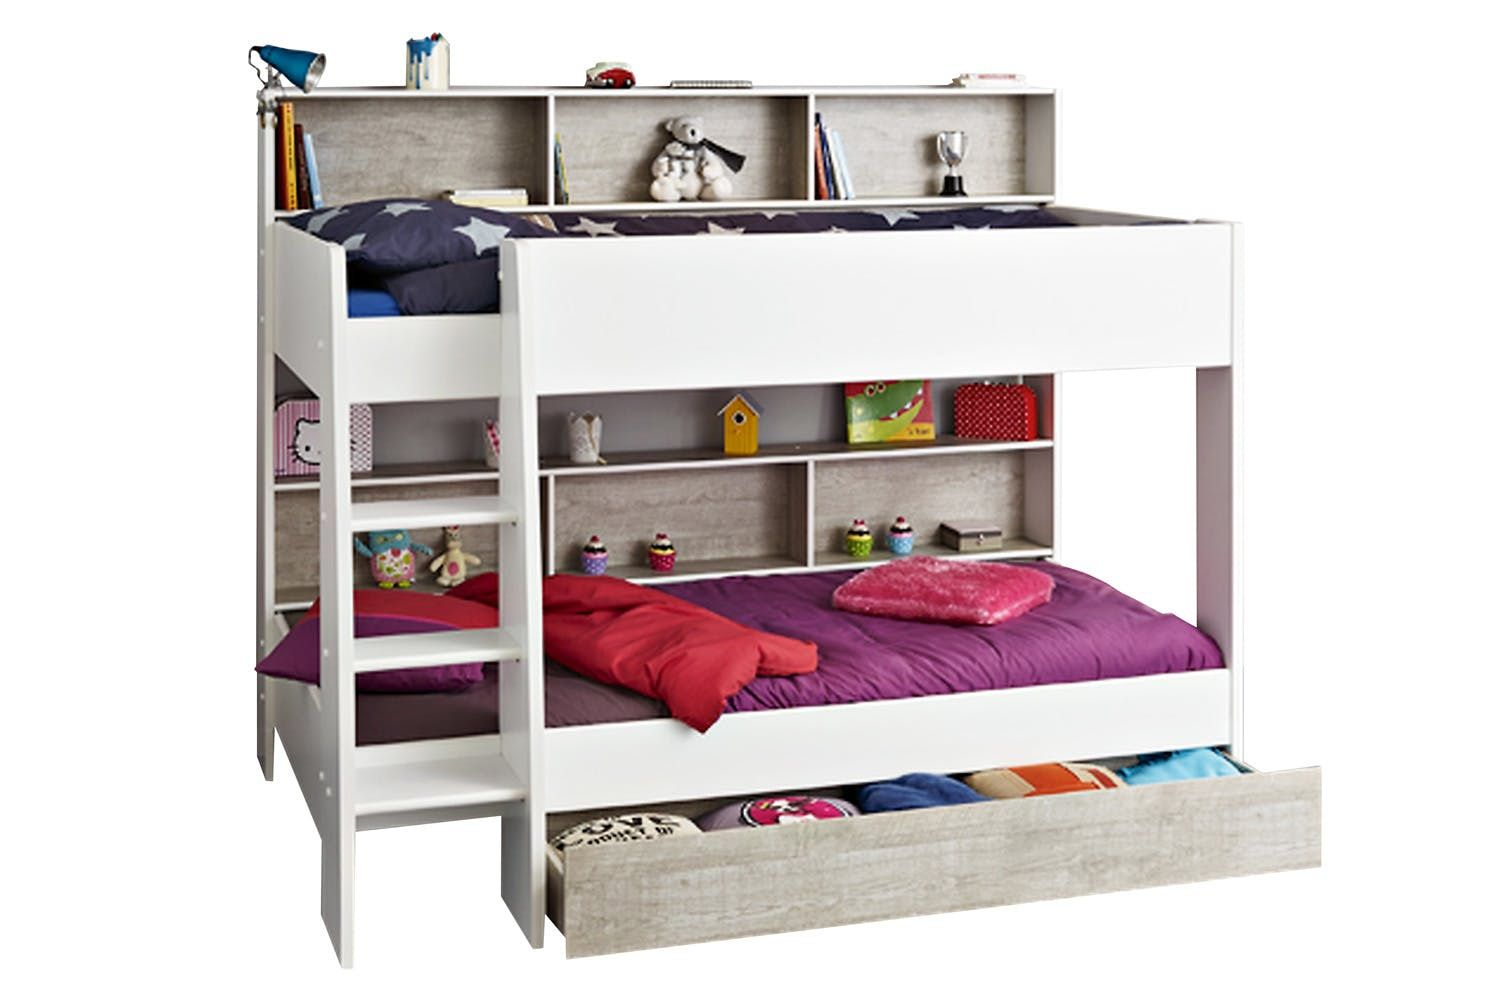 77 Bunk Beds Ireland Modern Bedroom Interior Design Check More At